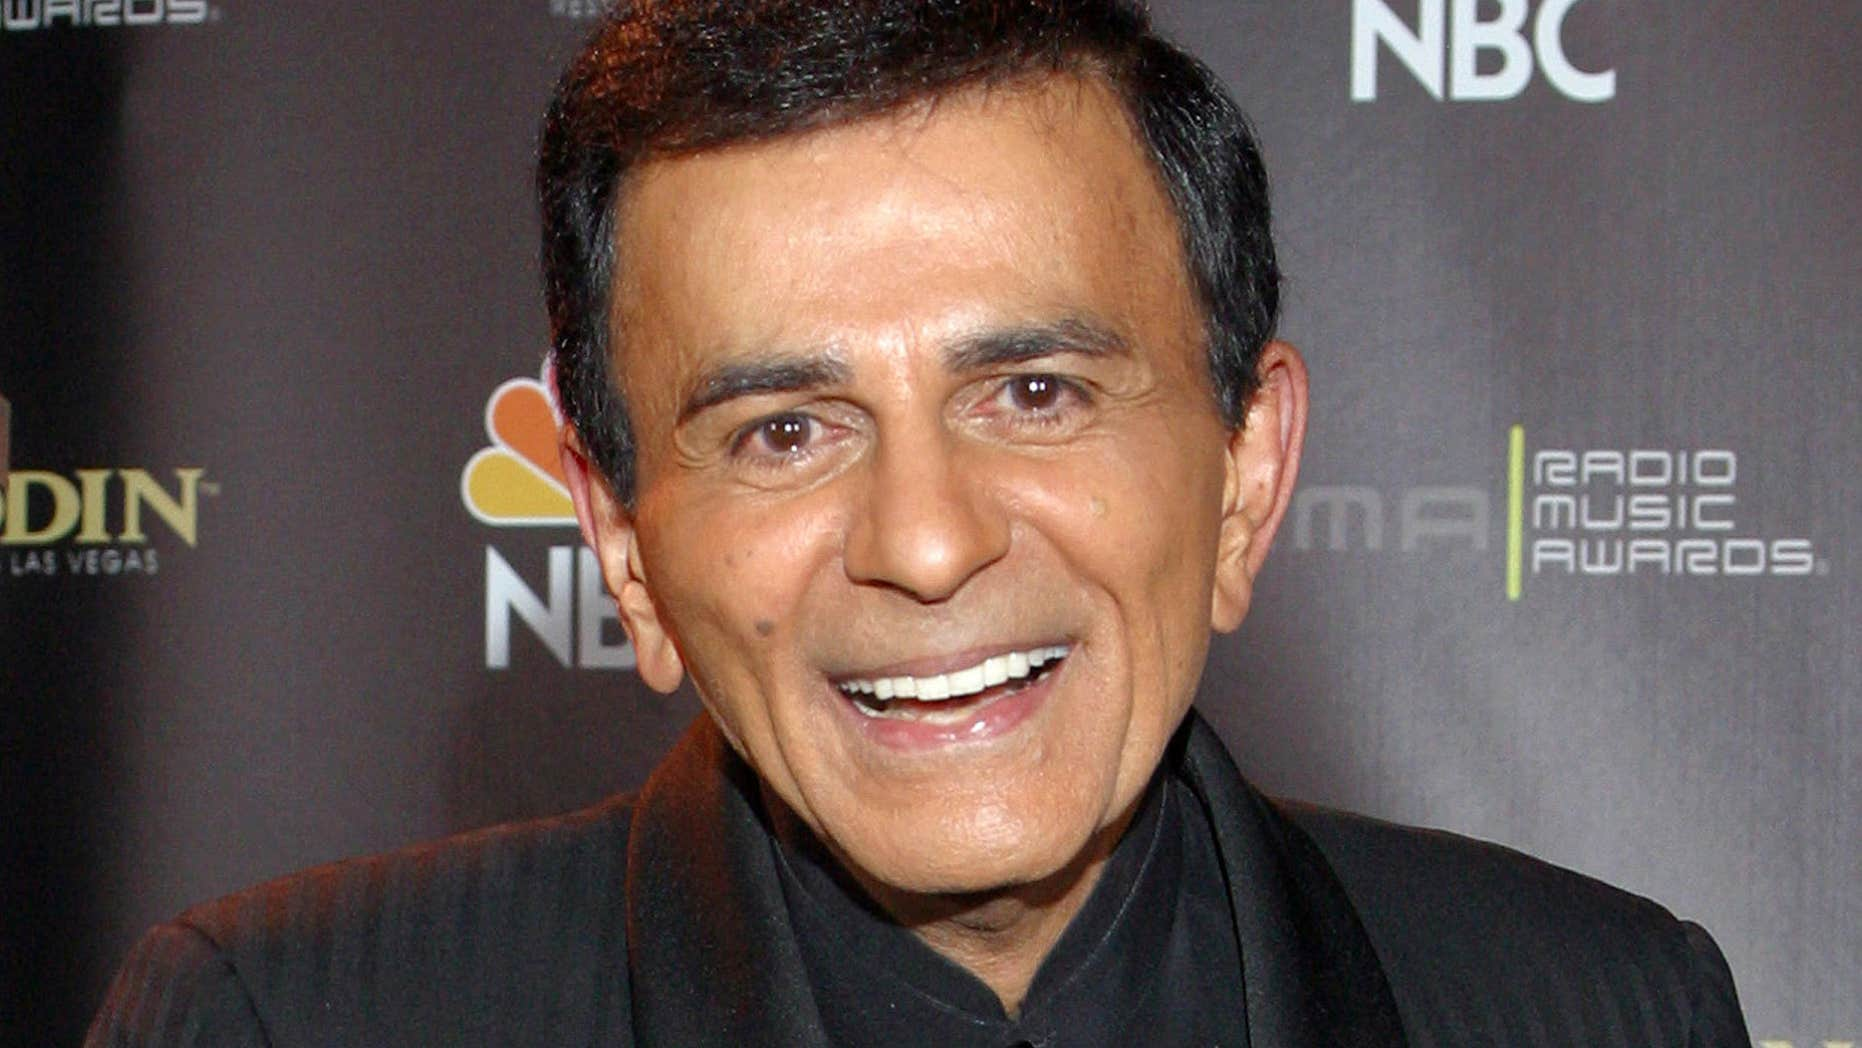 FILE - In this Oct. 27, 2003, file photo, Casey Kasem poses for photographers after receiving the Radio Icon award during The 2003 Radio Music Awards at the Aladdin Resort and Casino in Las Vegas.